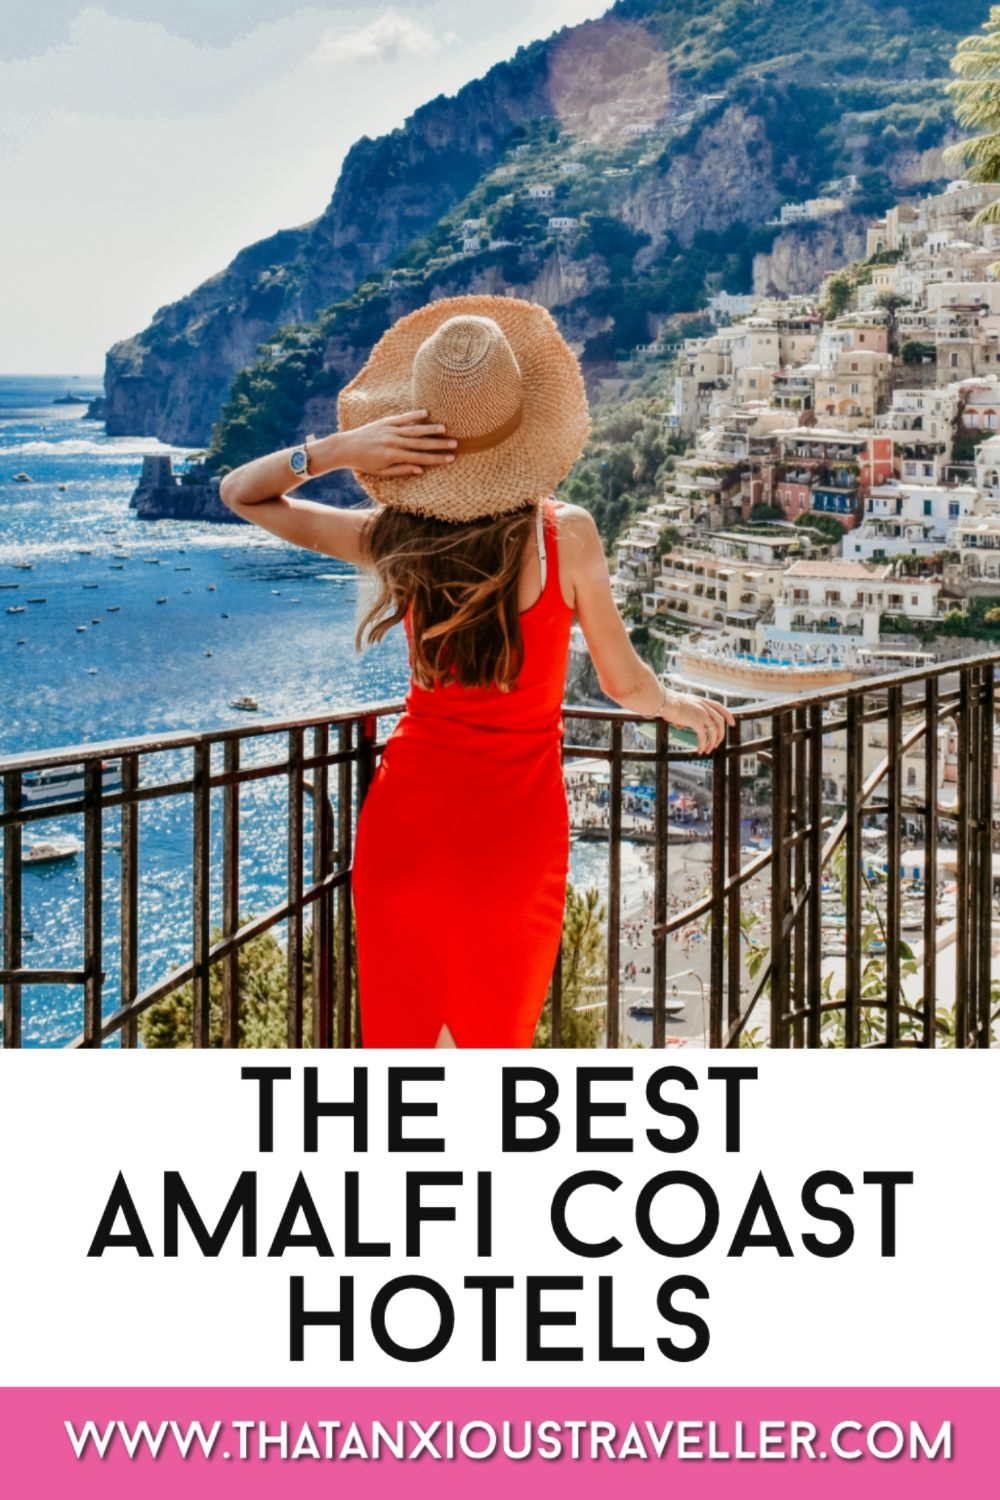 Looking for the very best places to stay on the Amalfi Coast? Find the best hotels in Positano, Amalfi, Ravello, Capri, Sorrento and Naples with this guide to the best hotels on the Amalfi Coast! Read insider tips, and discover your ideal place to stay for a perfect Italy vacation. Take the guesswork out of picking a good hotel, with these hotels and B&Bs for all budgets that'll guarantee happiness! #amalficoast #amalficoastwedding #italy #hotels